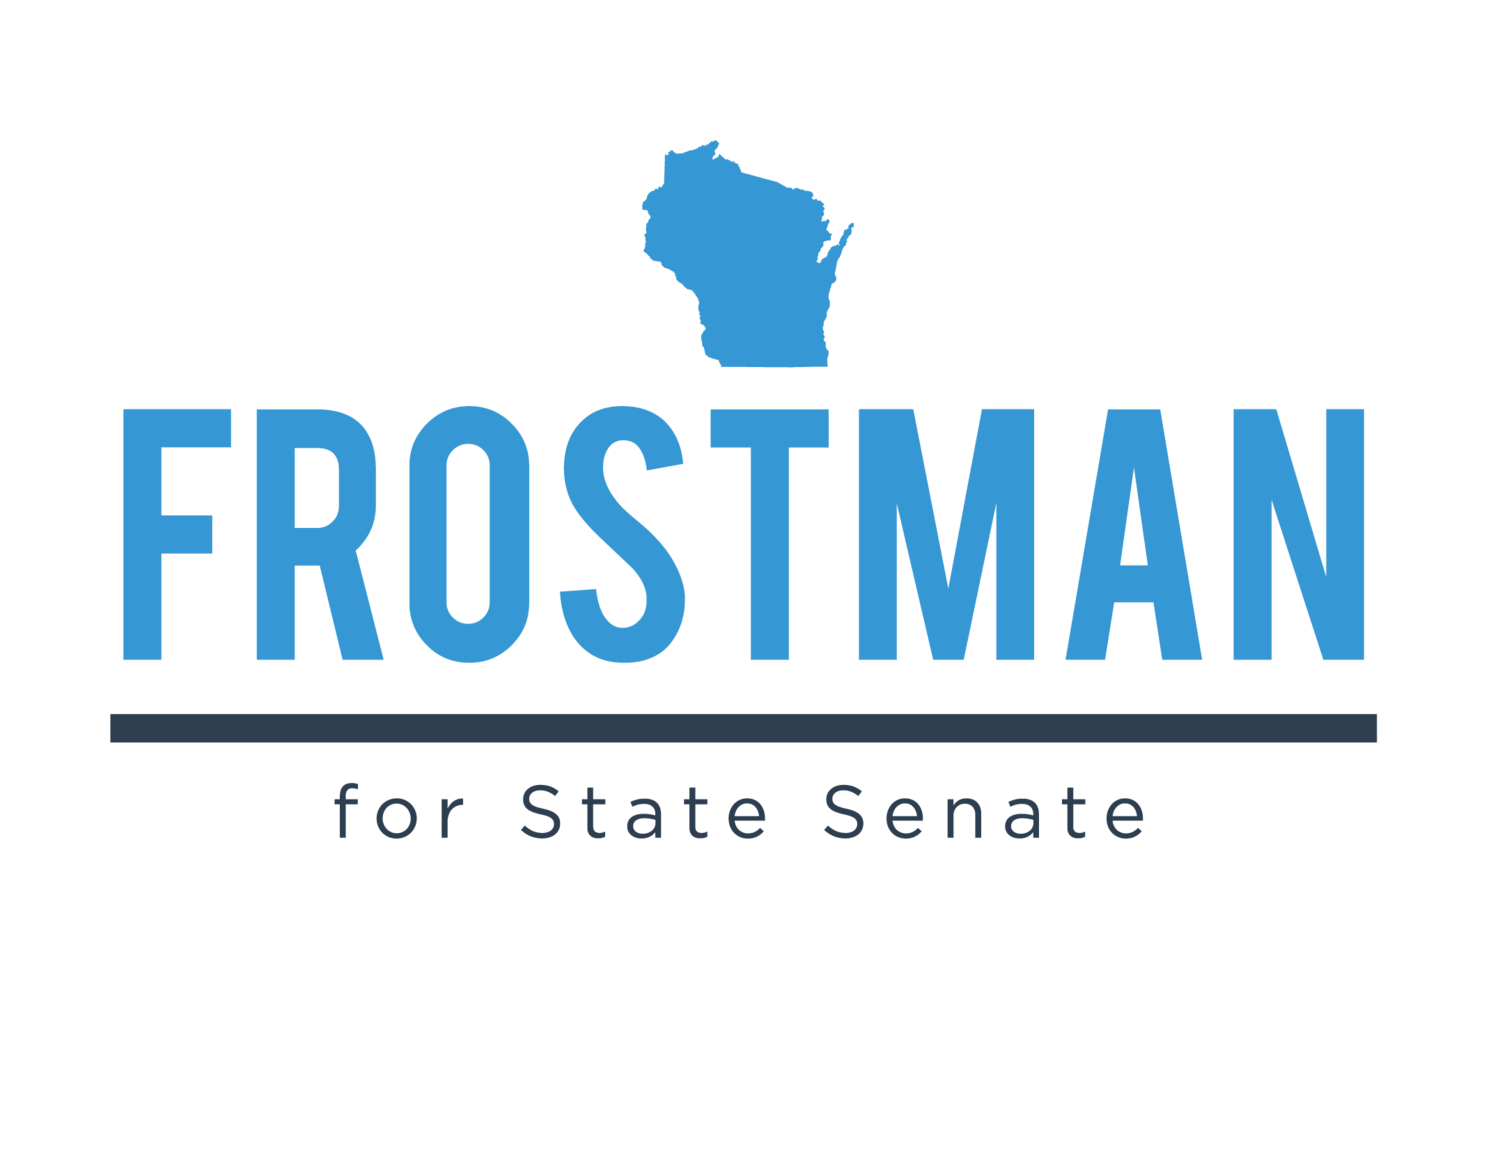 Caleb Frostman for State Senate